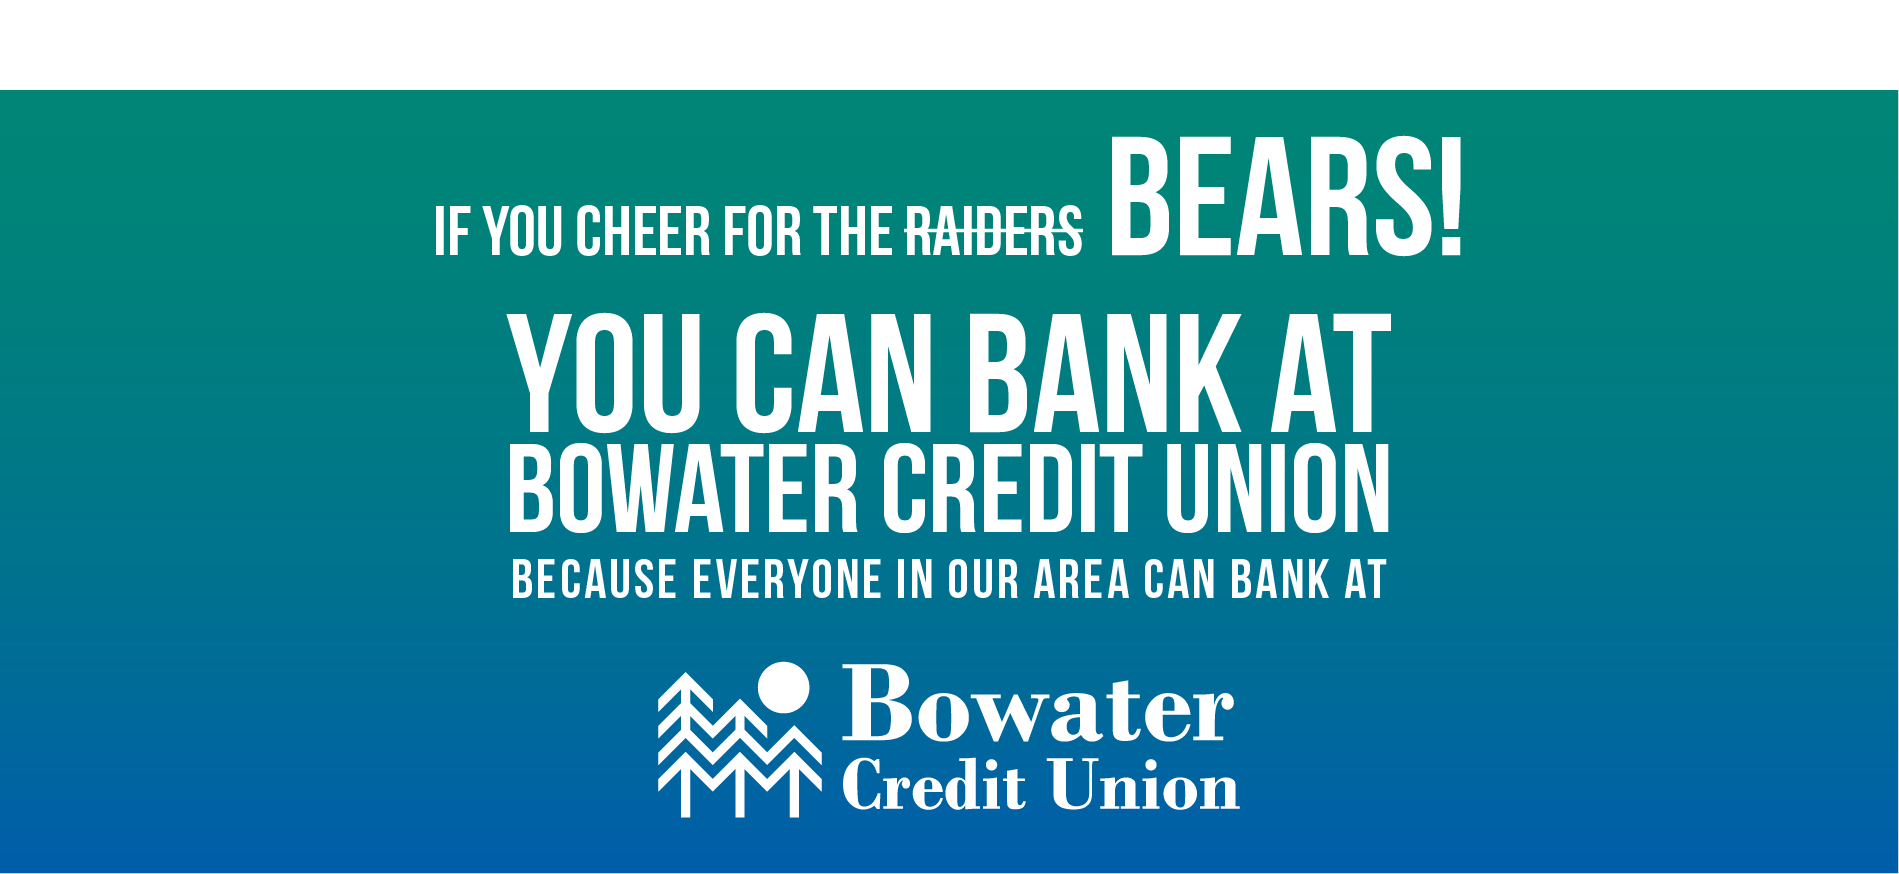 if you cheer for the Bears you can bank at Bowater Credit Union